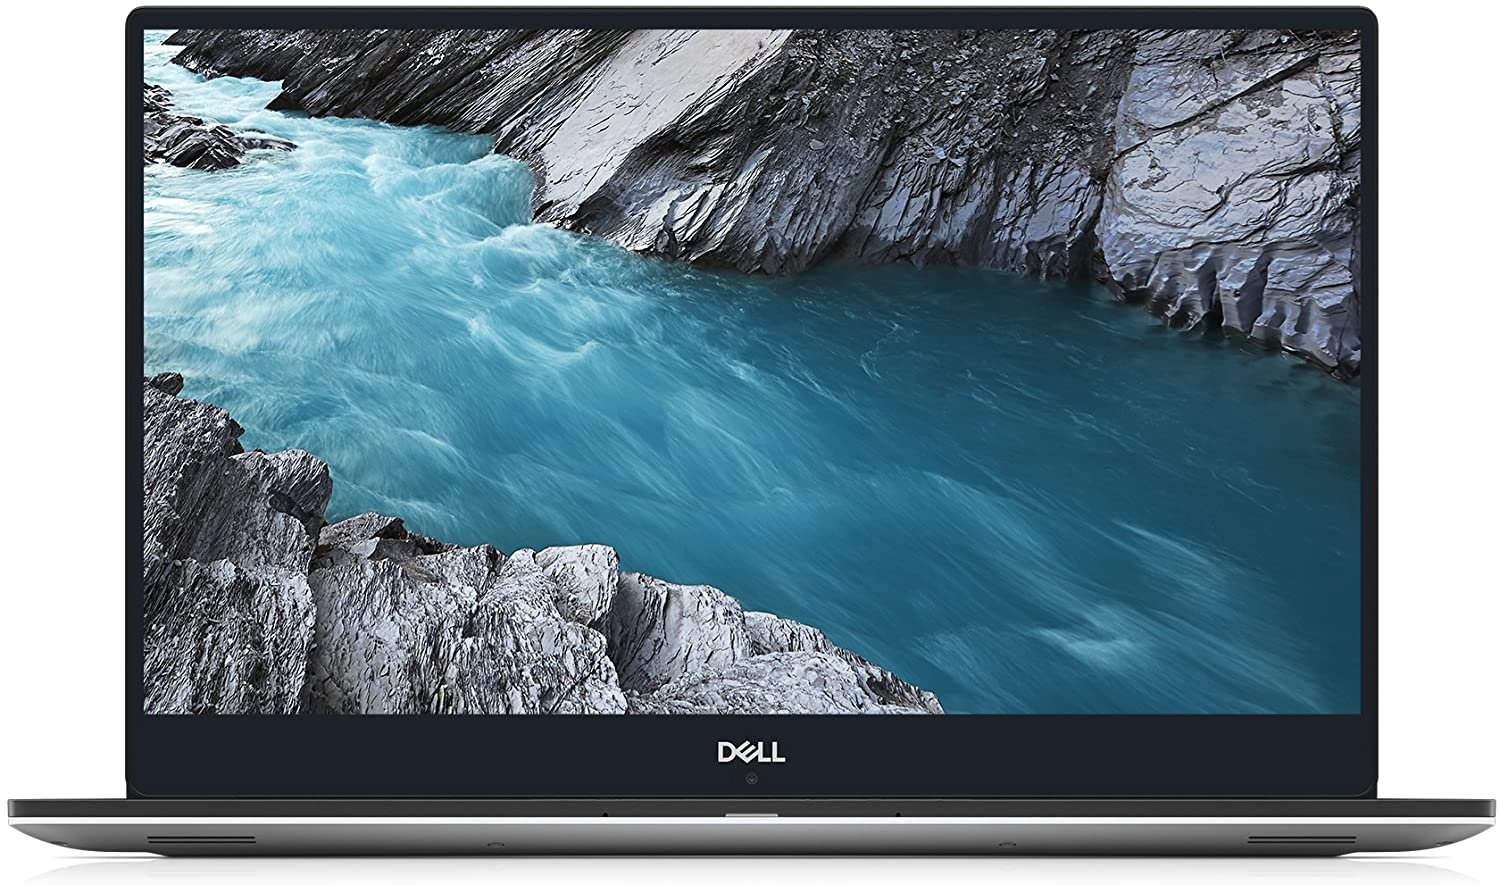 Dell XPS 9570 Laptop